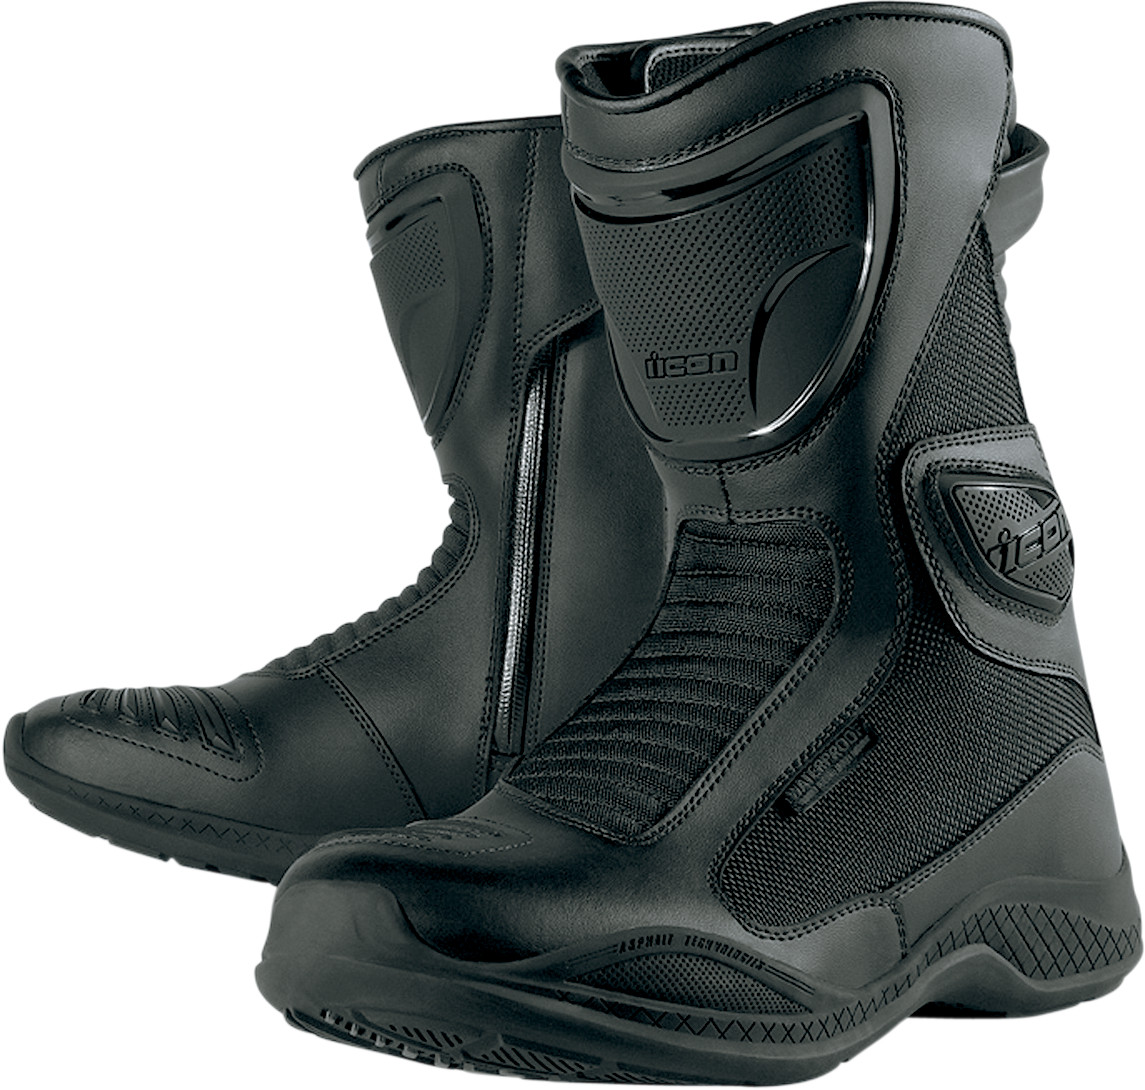 icon-reign-waterproof-motorcycle-boot-black-79283.jpg